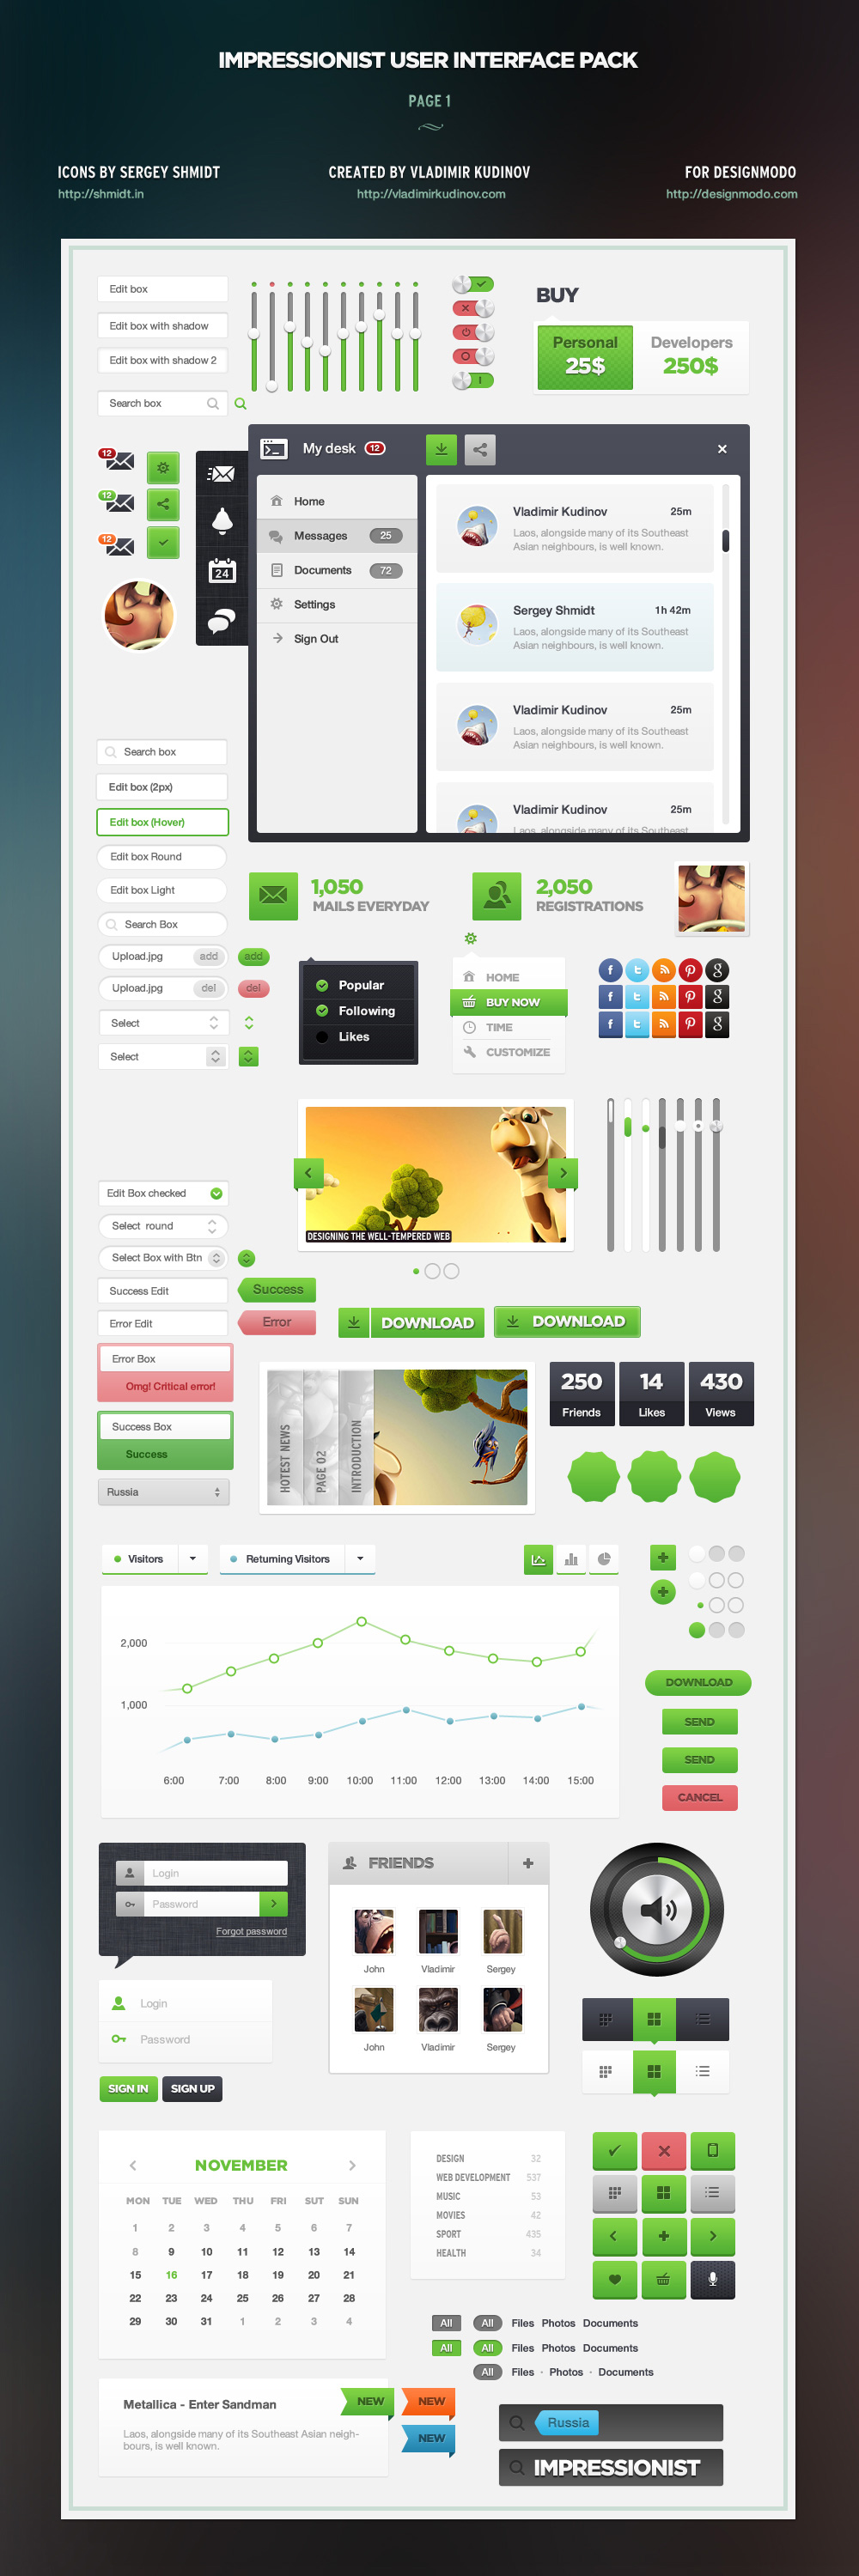 Impressionist UI - User Interface Pack by ProRock